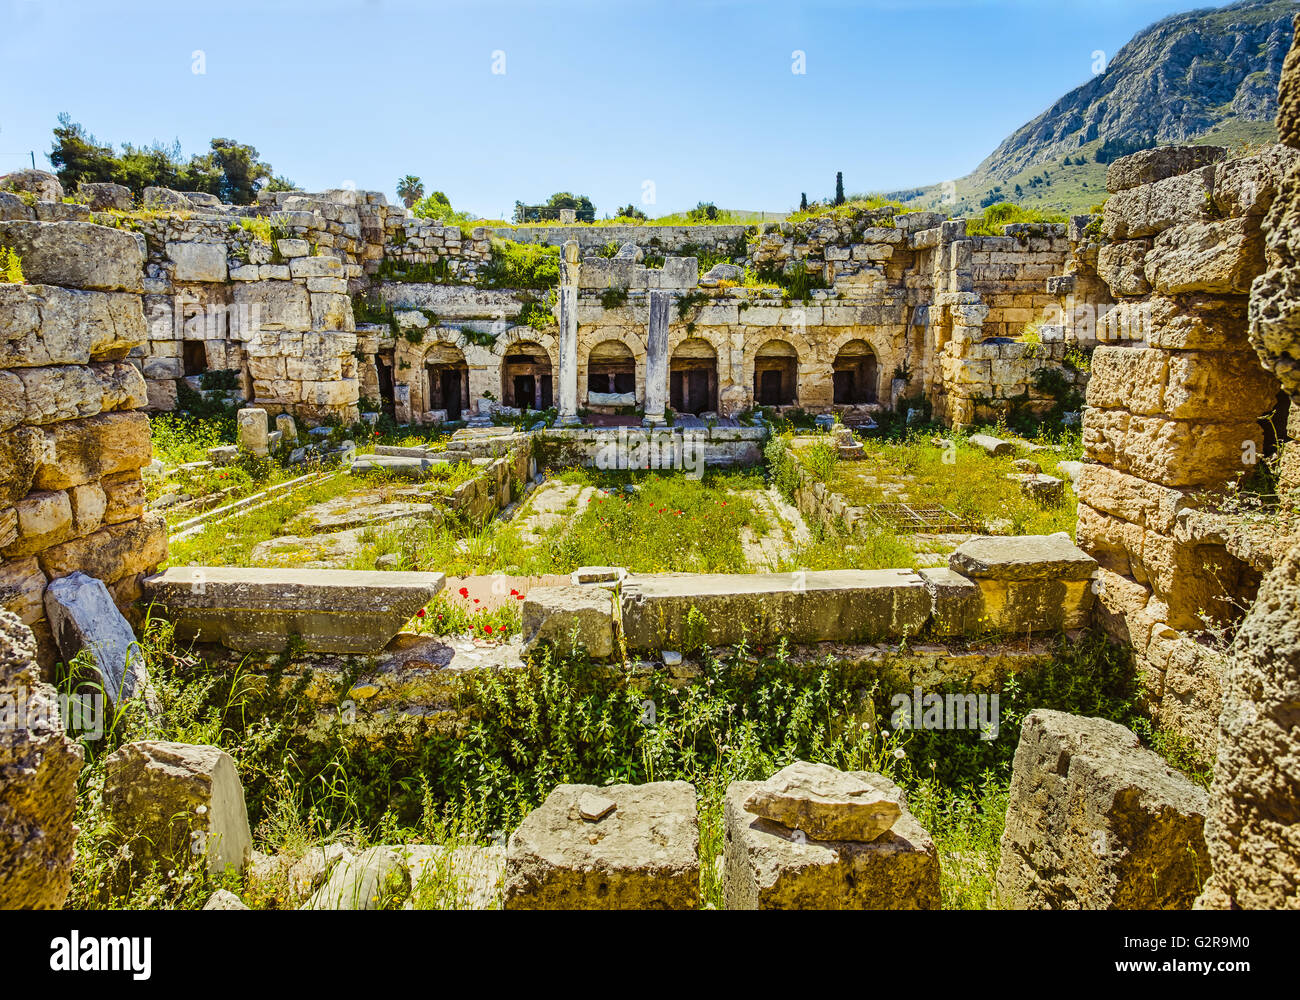 roman ruins of baths in Ancient Corinth, Peloponnese - Stock Image